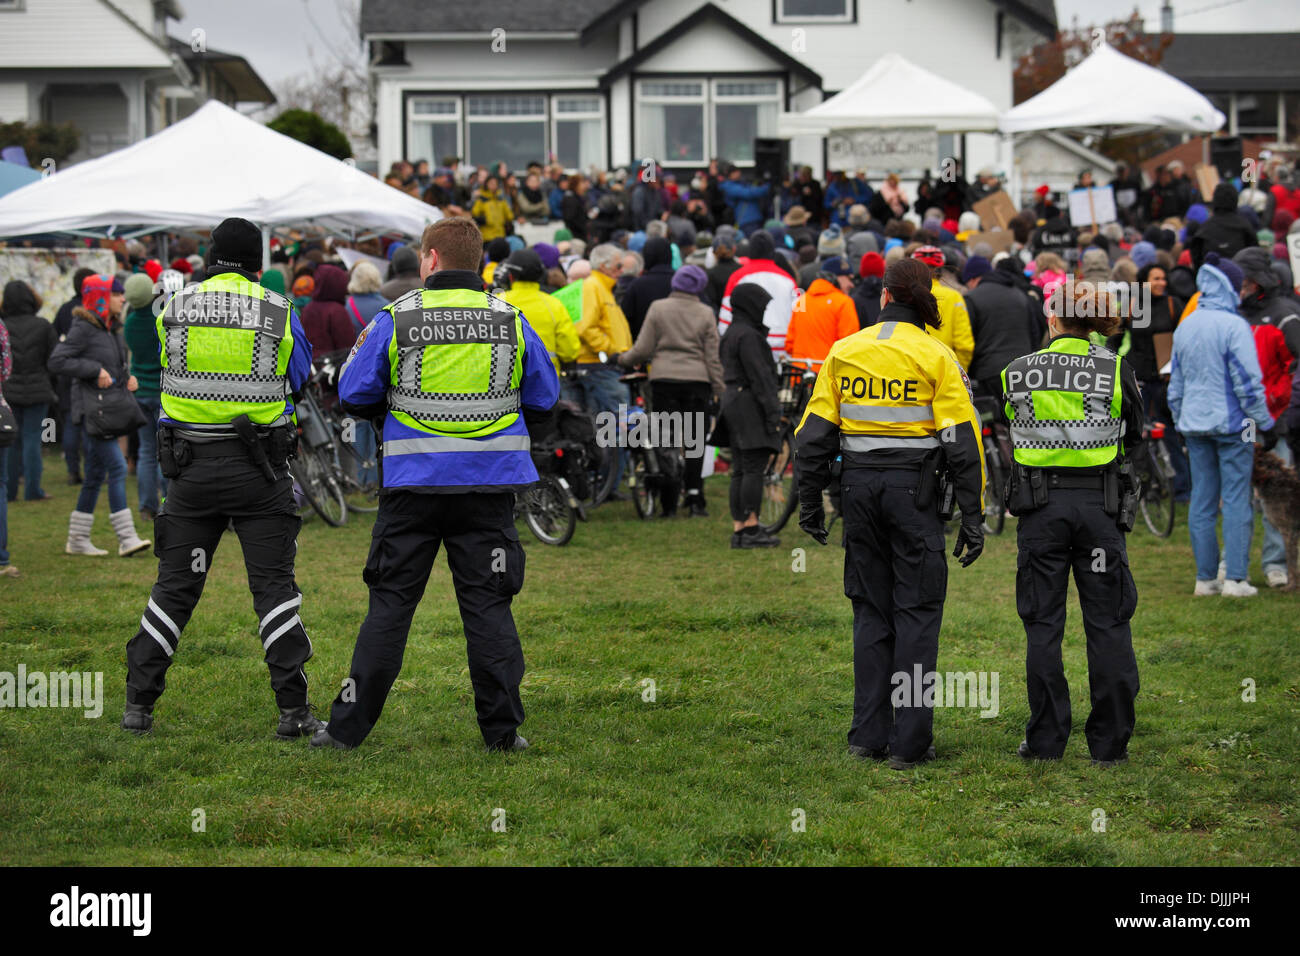 Polizeipräsenz am Anti-Öl-pipeline Rallye-Victoria, British Columbia, Kanada. Stockbild